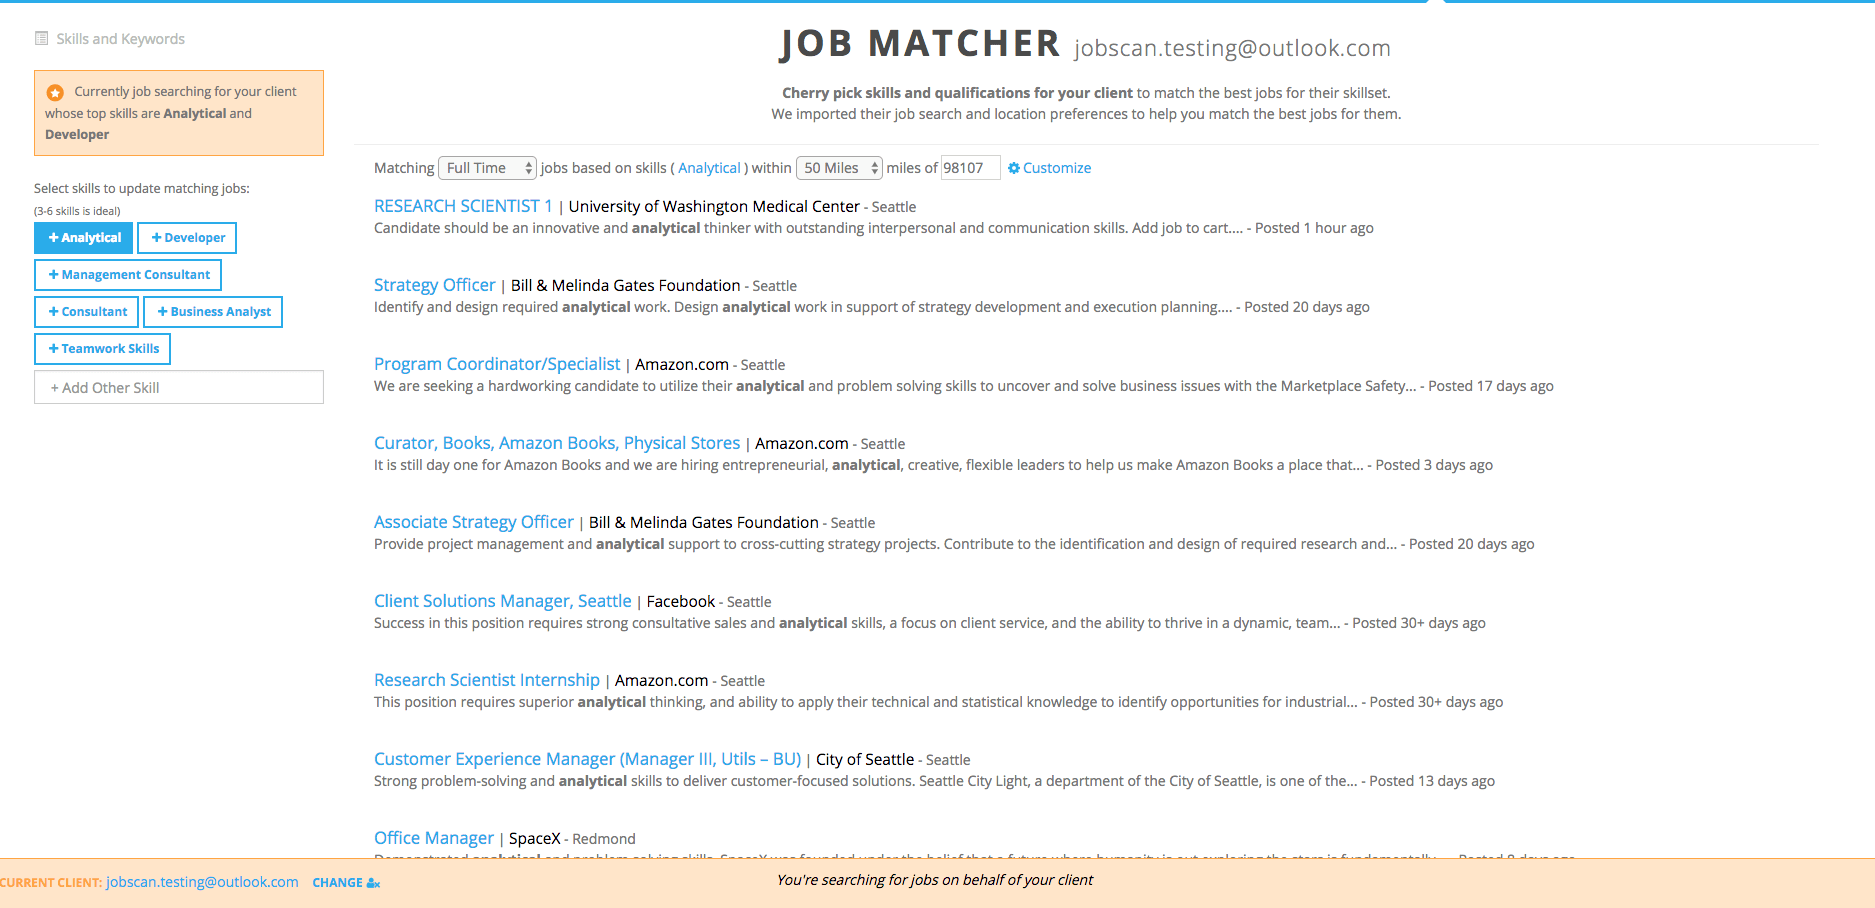 jobscan-job-matcher